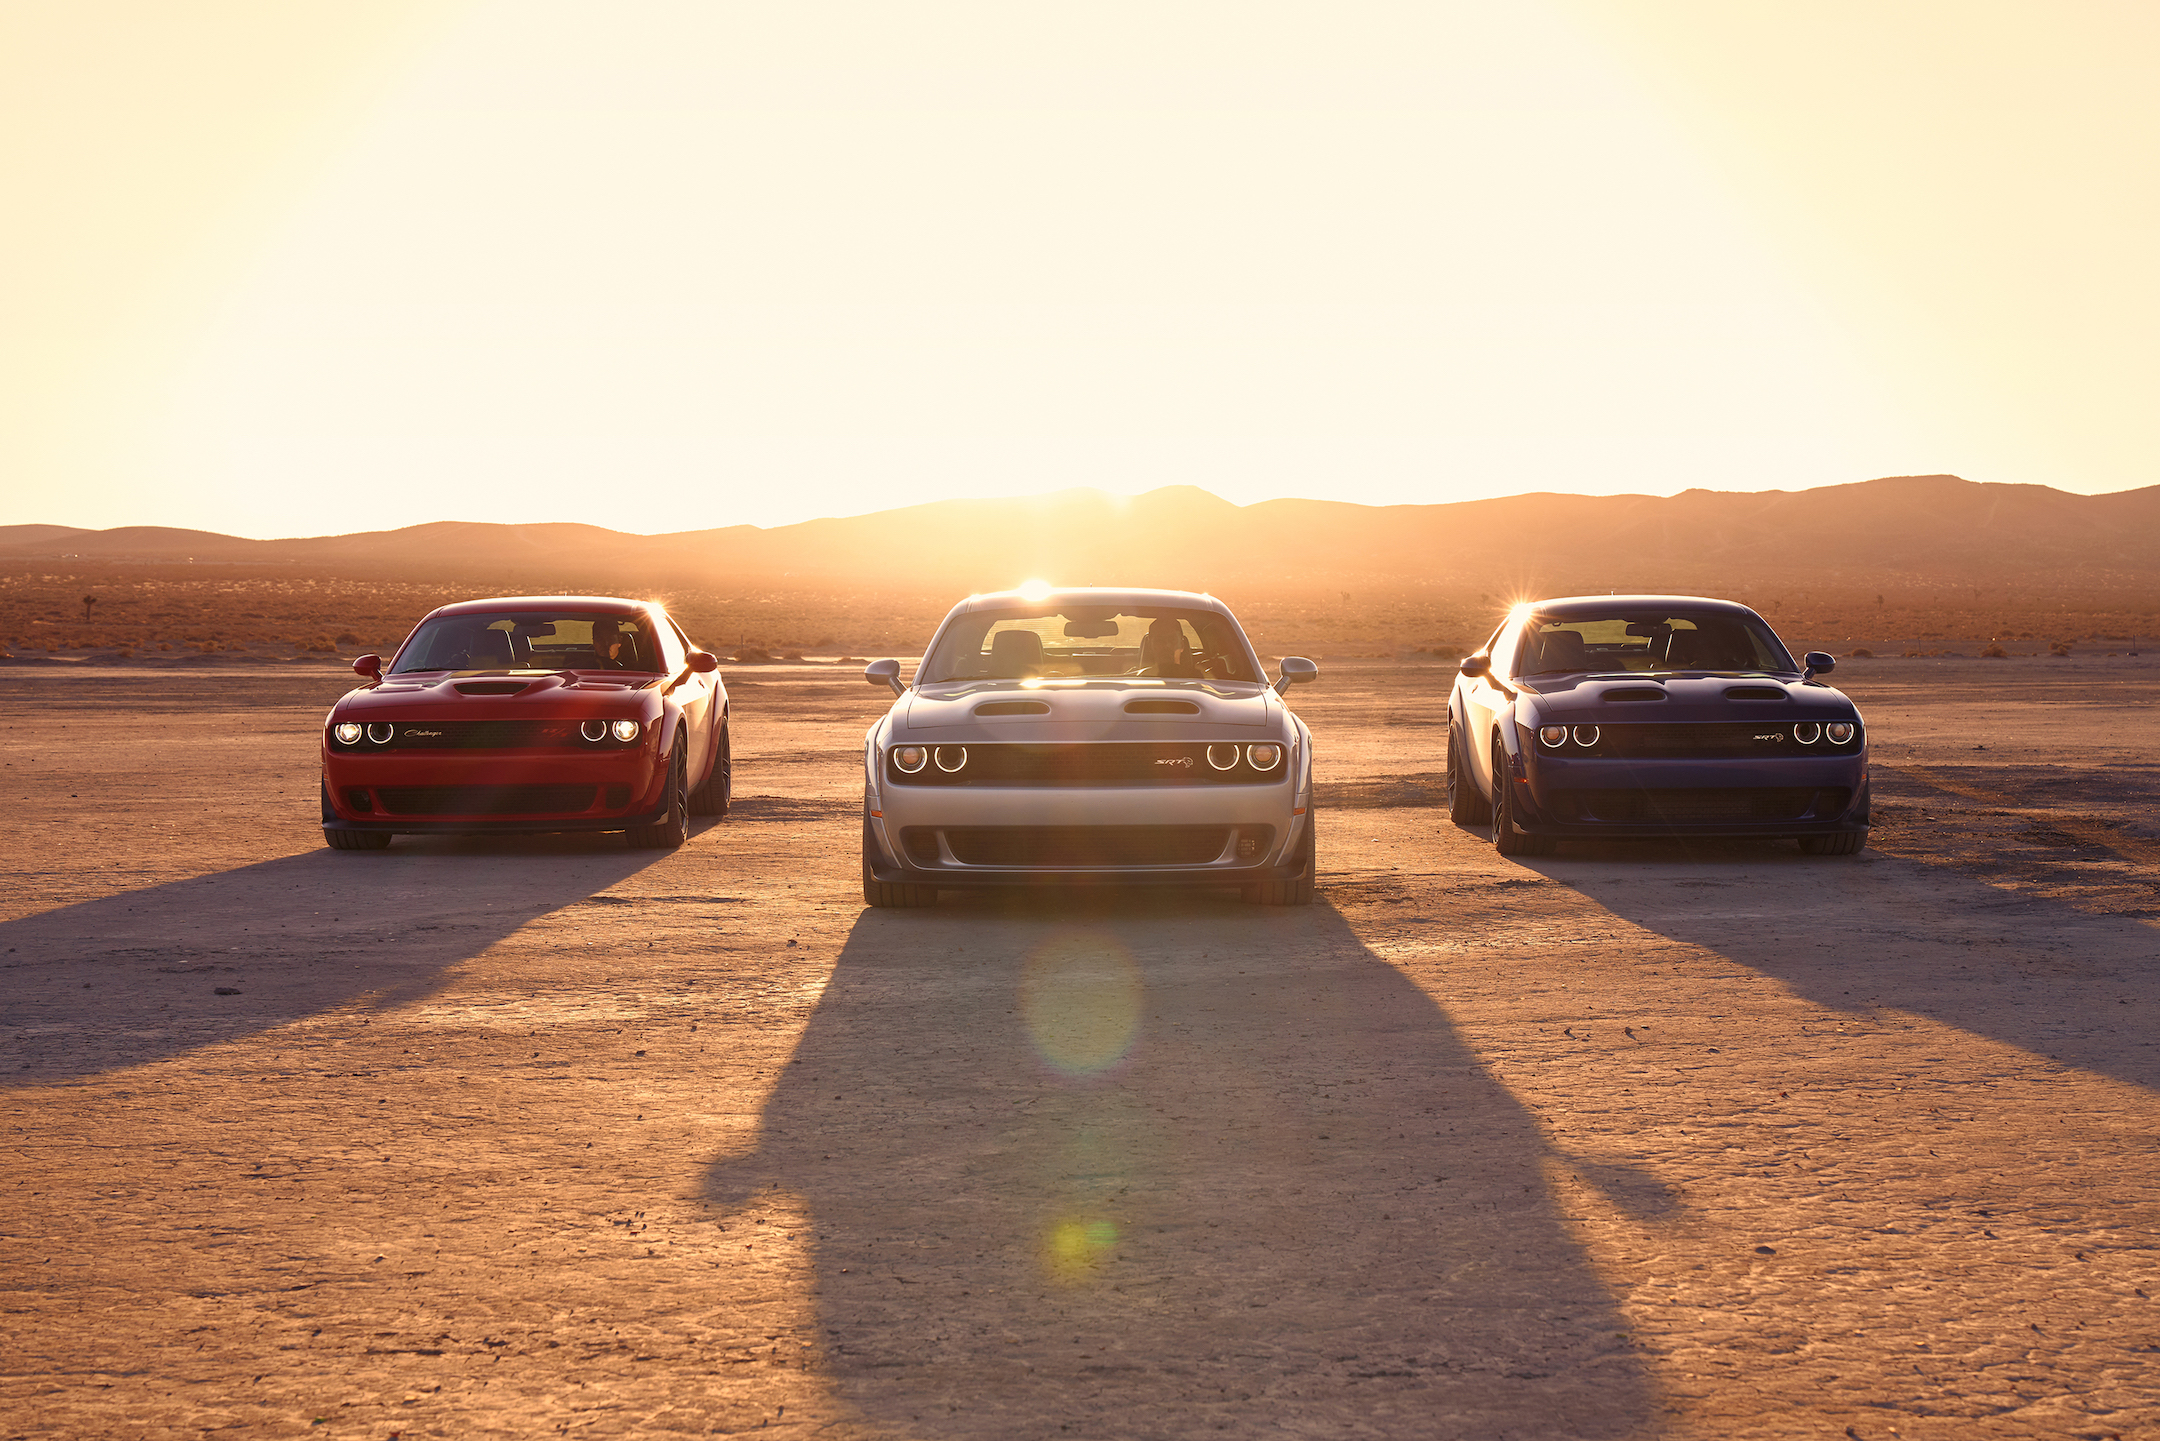 2019 Dodge Challenger Lineup: R/T Scat Pack Widebody, SRT Hellcat Redeye Widebody, SRT Hellcat Widebody (from left to right)